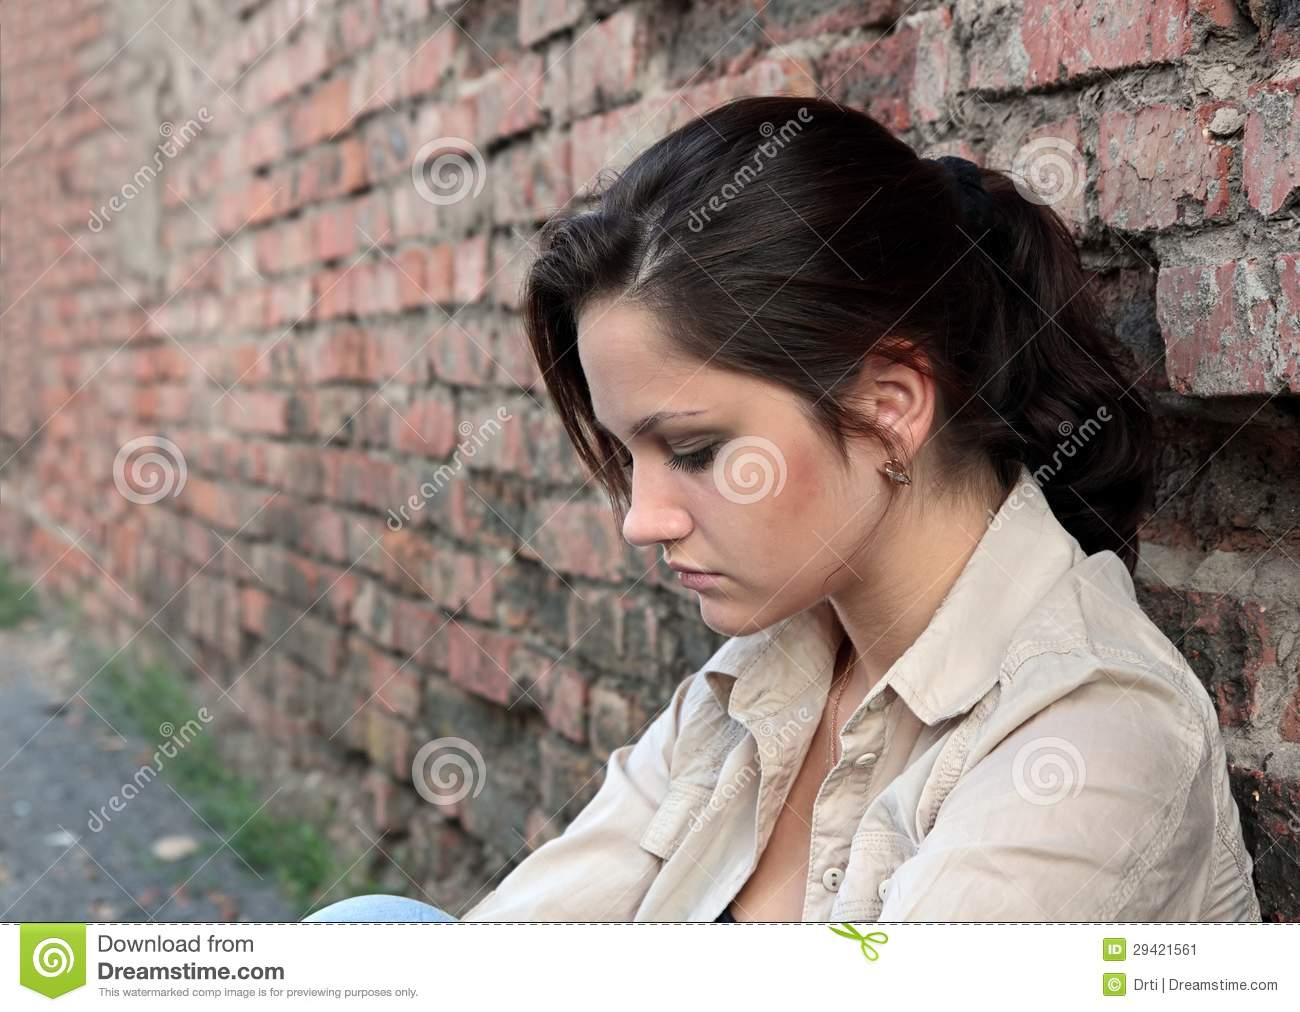 Young Woman In Despair Stock Image - Image: 29421561